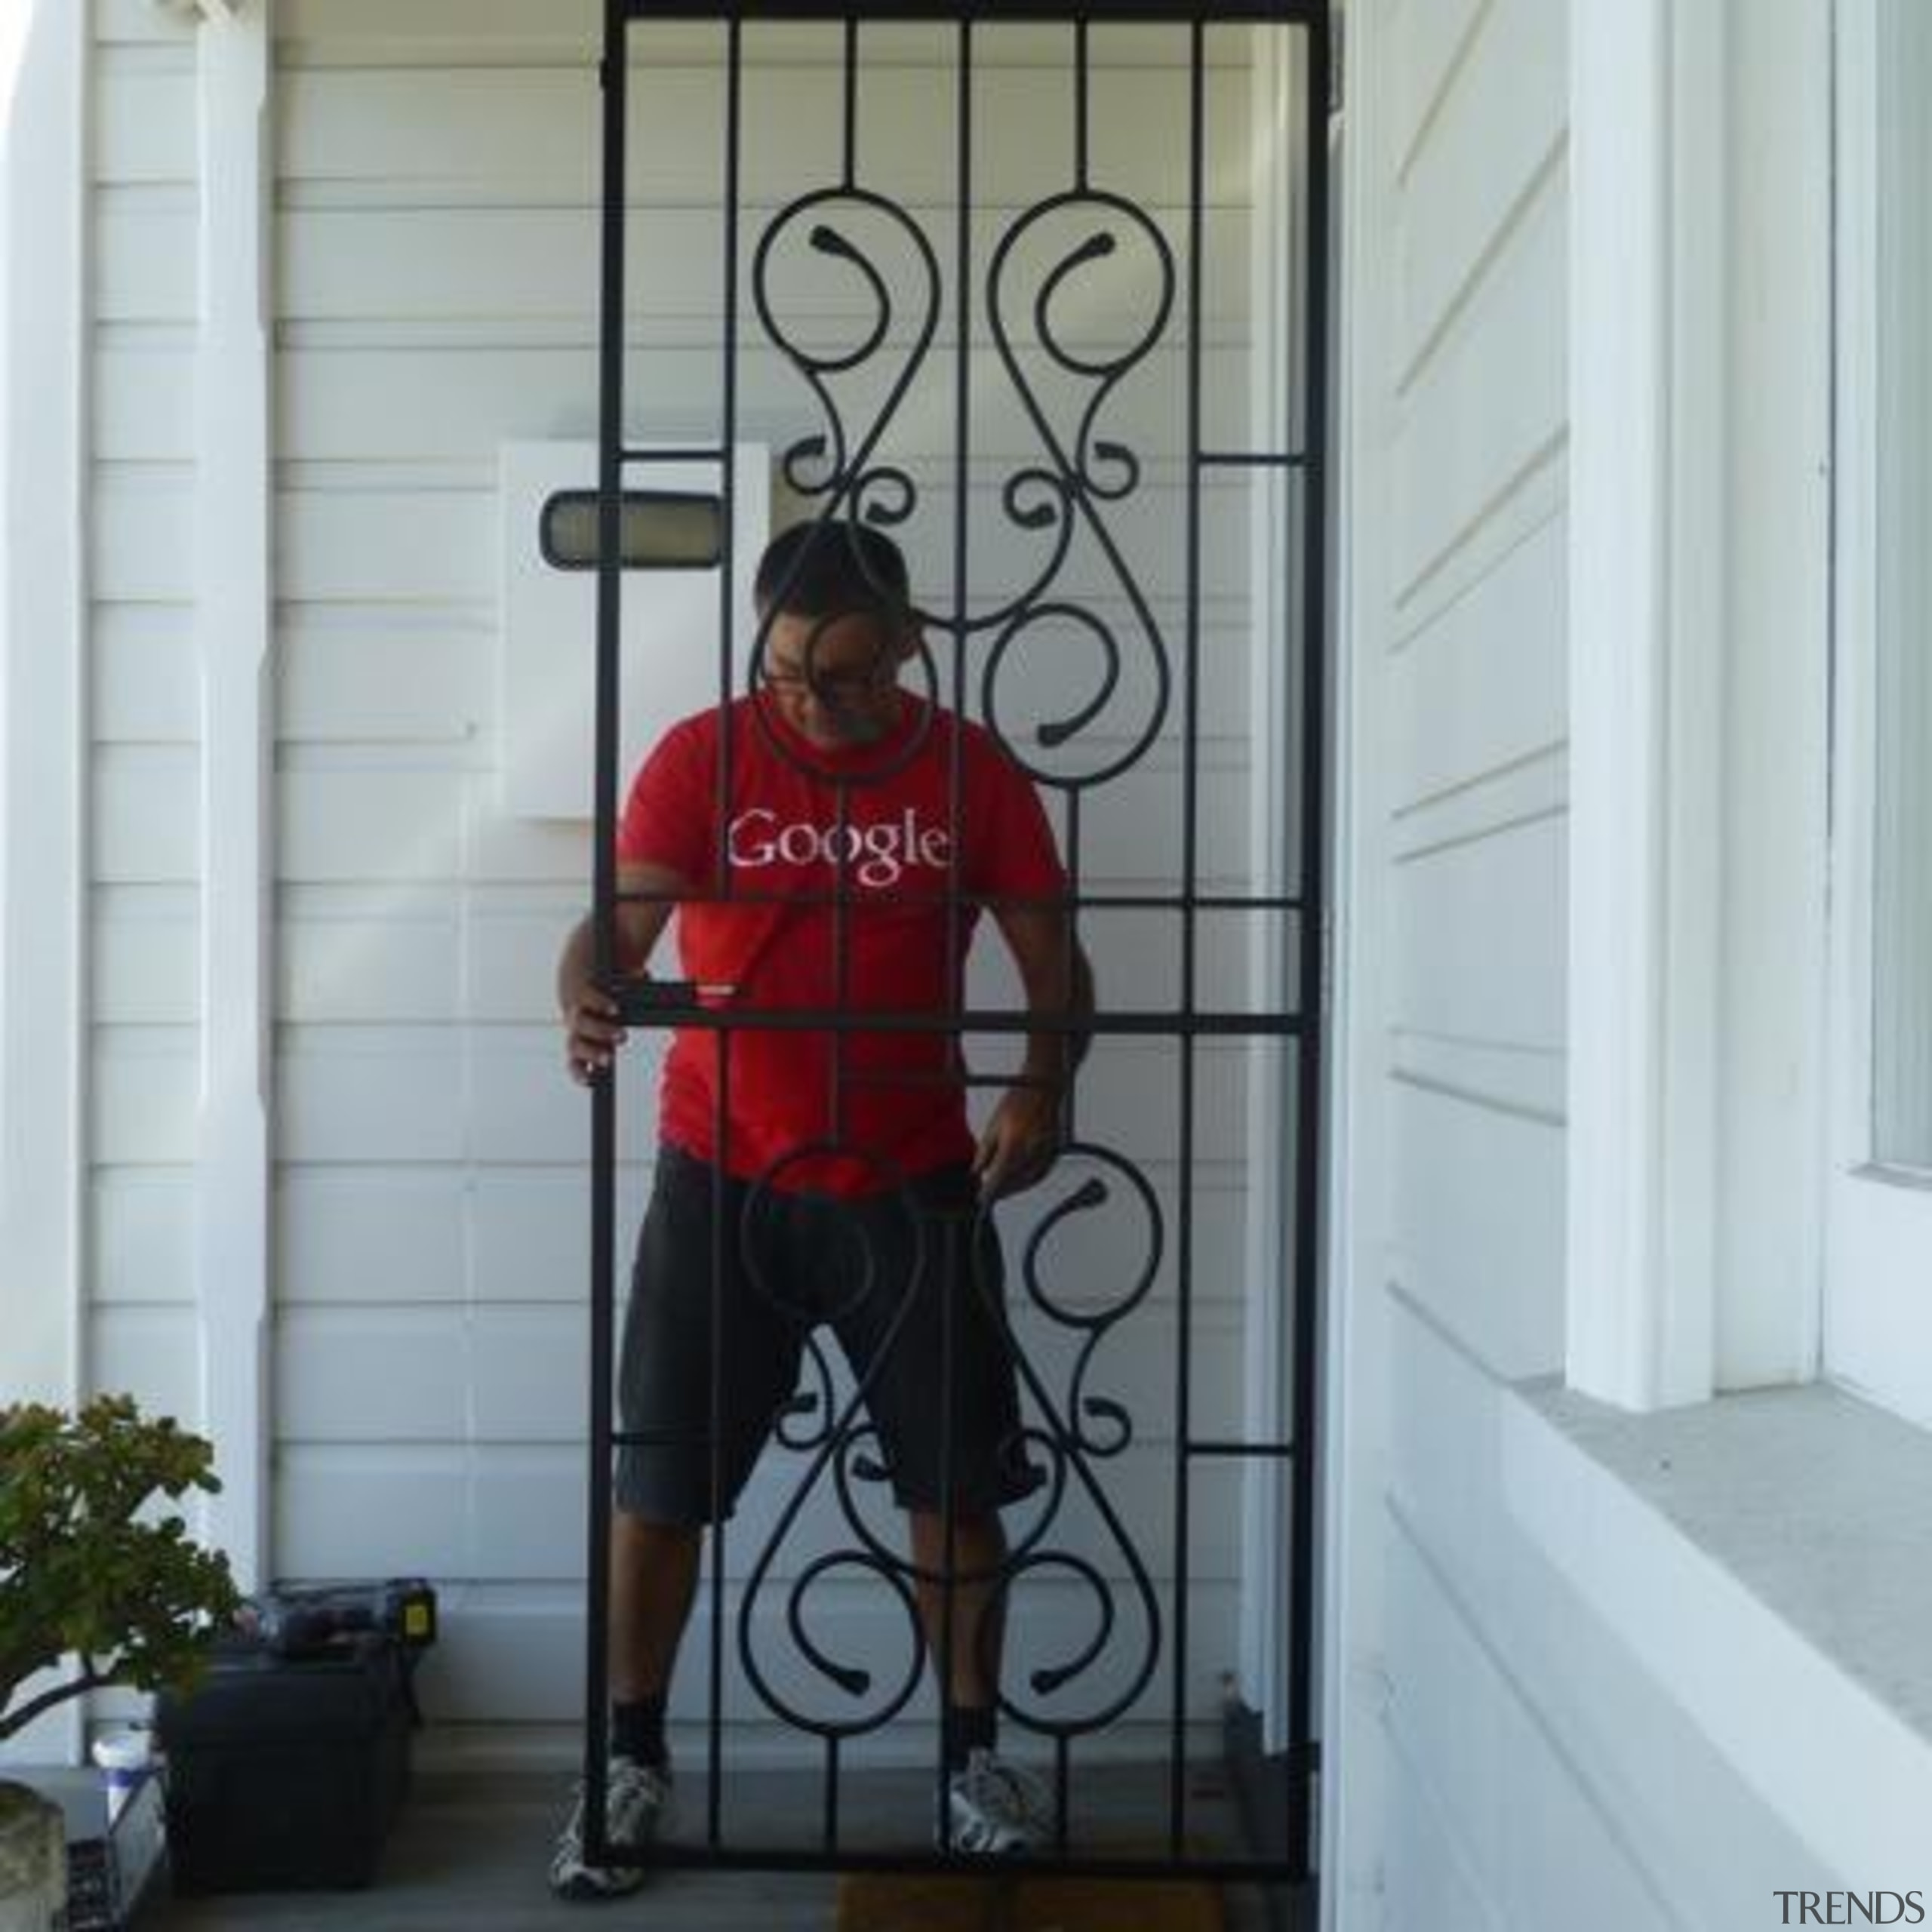 Have you been looking for something a little door, glass, iron, outerwear, red, shoulder, standing, structure, window, gray